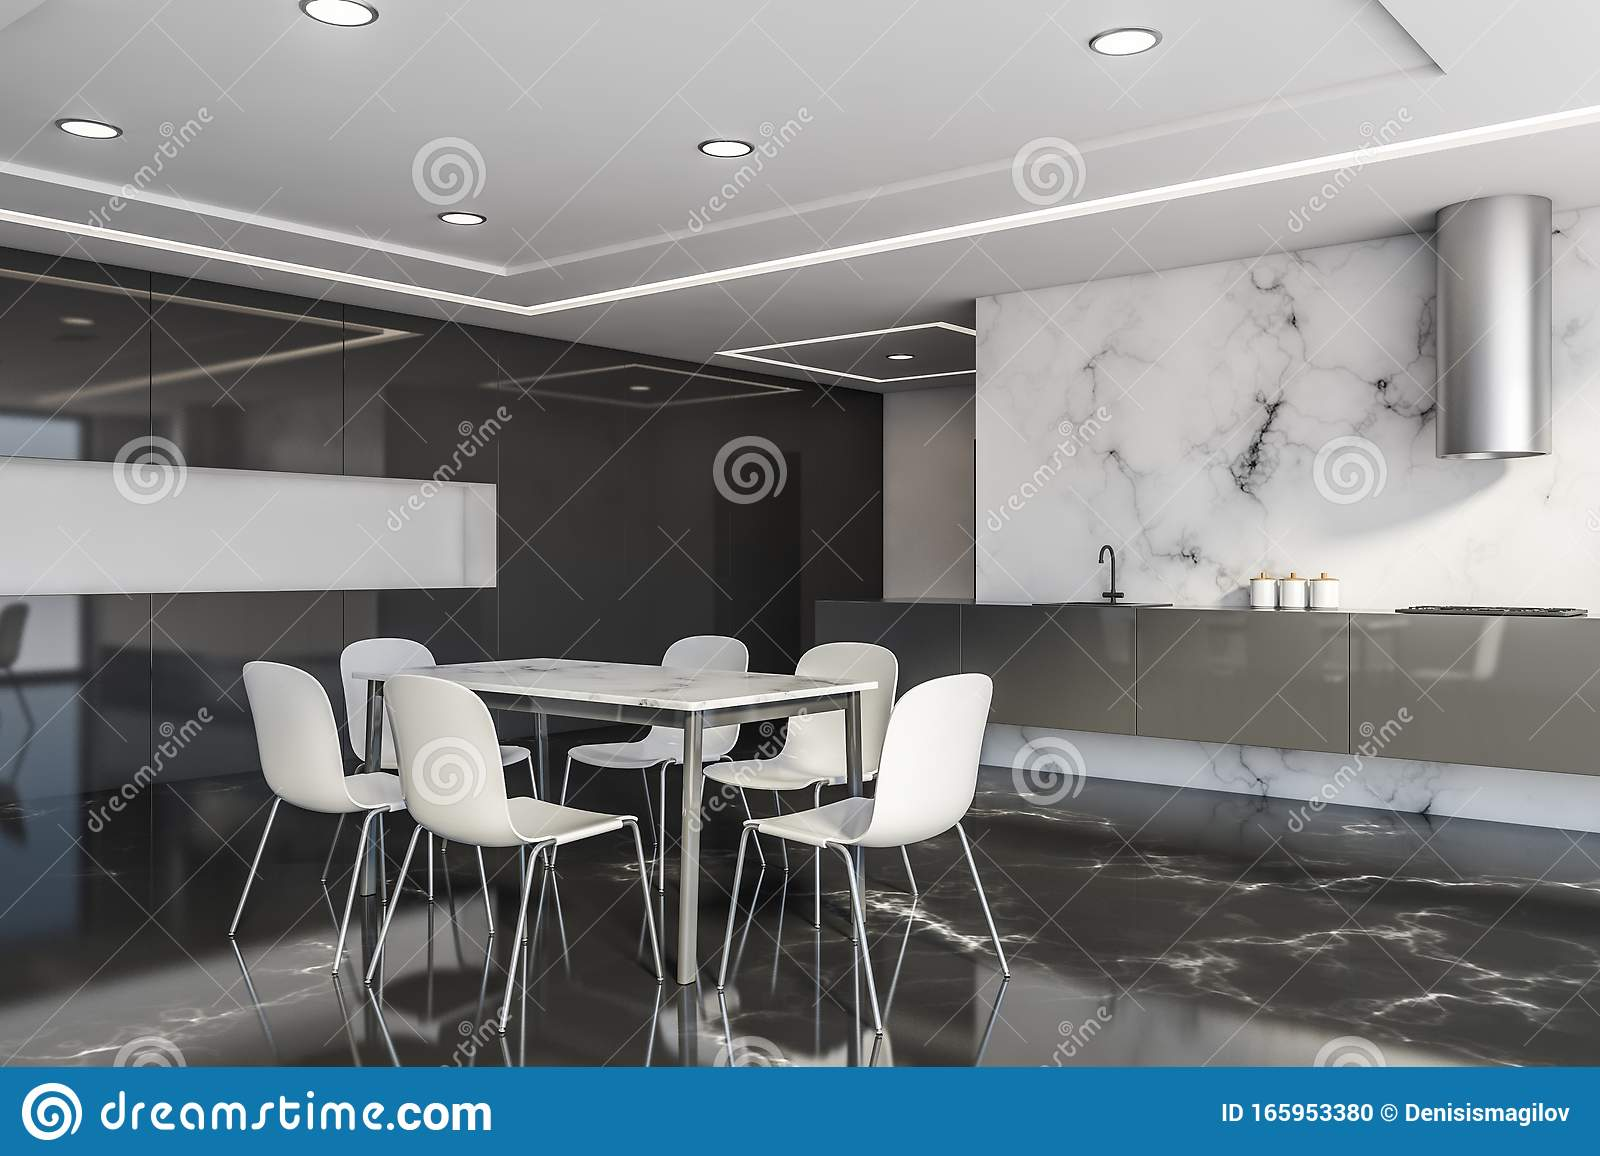 White And Black Marble Kitchen Corner With Table Stock Illustration Illustration Of Kitchen Decorative 165953380